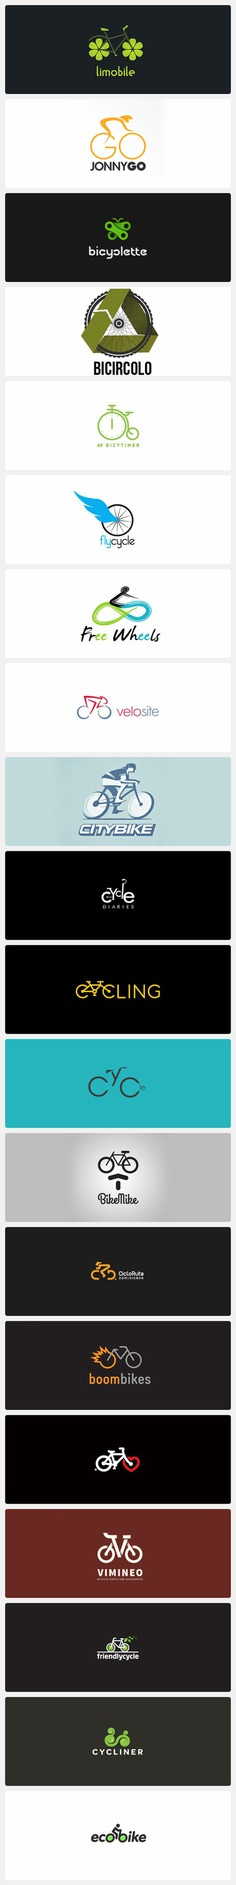 Creative Bicycle Logo Design Ideas